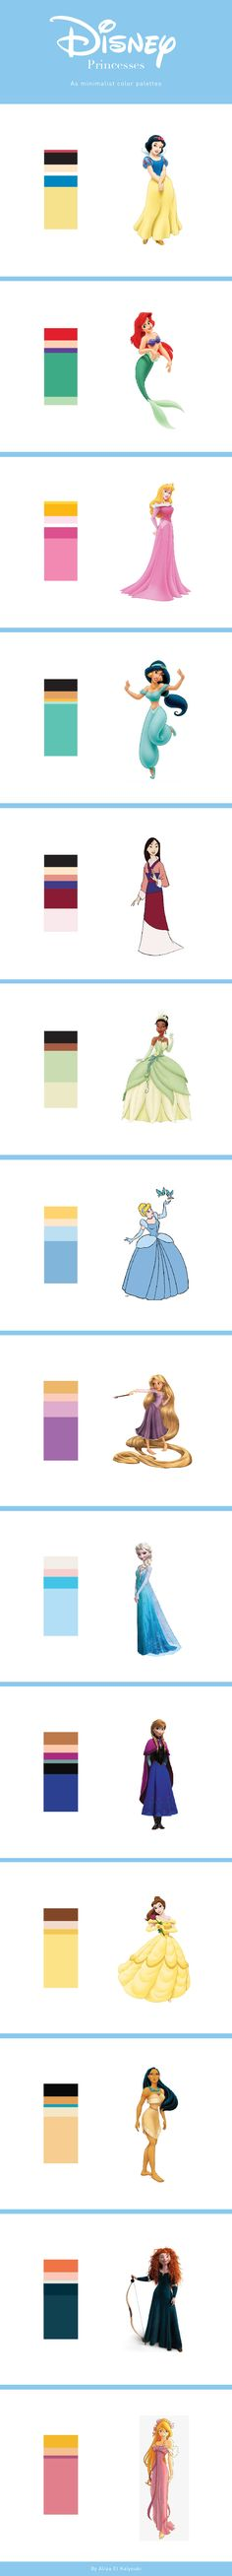 Minimalist Disney Princesses Color Palettes by Aliaa El Kalyoubi